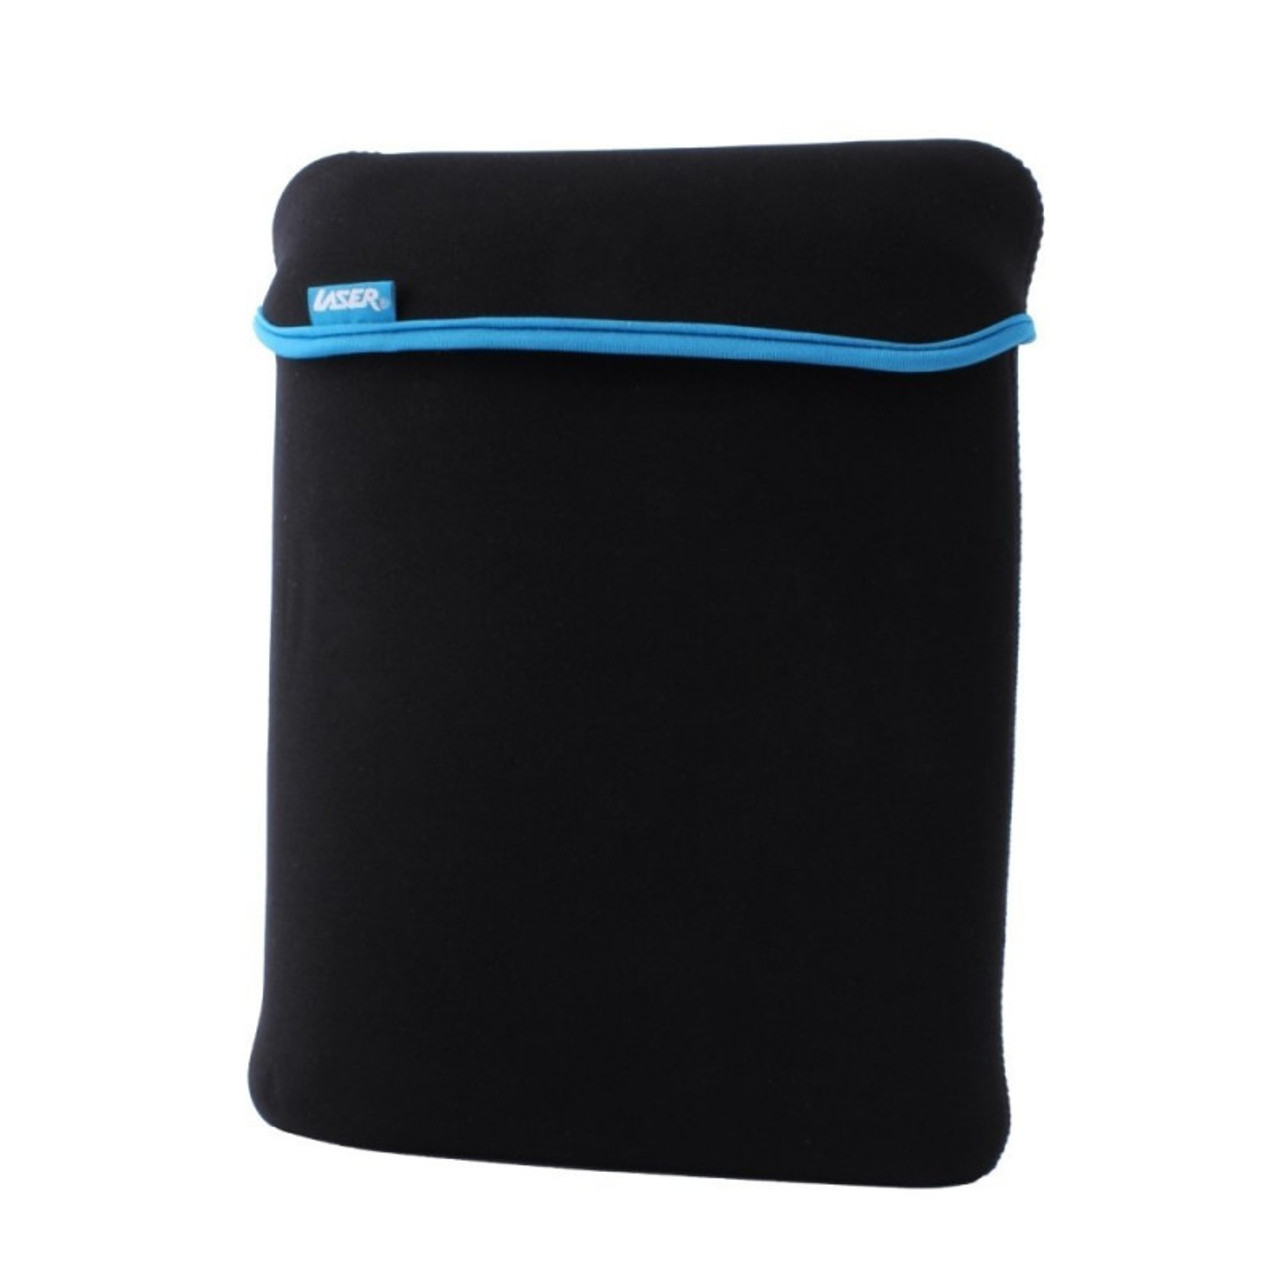 "Laser Laptop Sleeve To 10"" Neoprene Reversible (PK-SMARTNS10BB)"